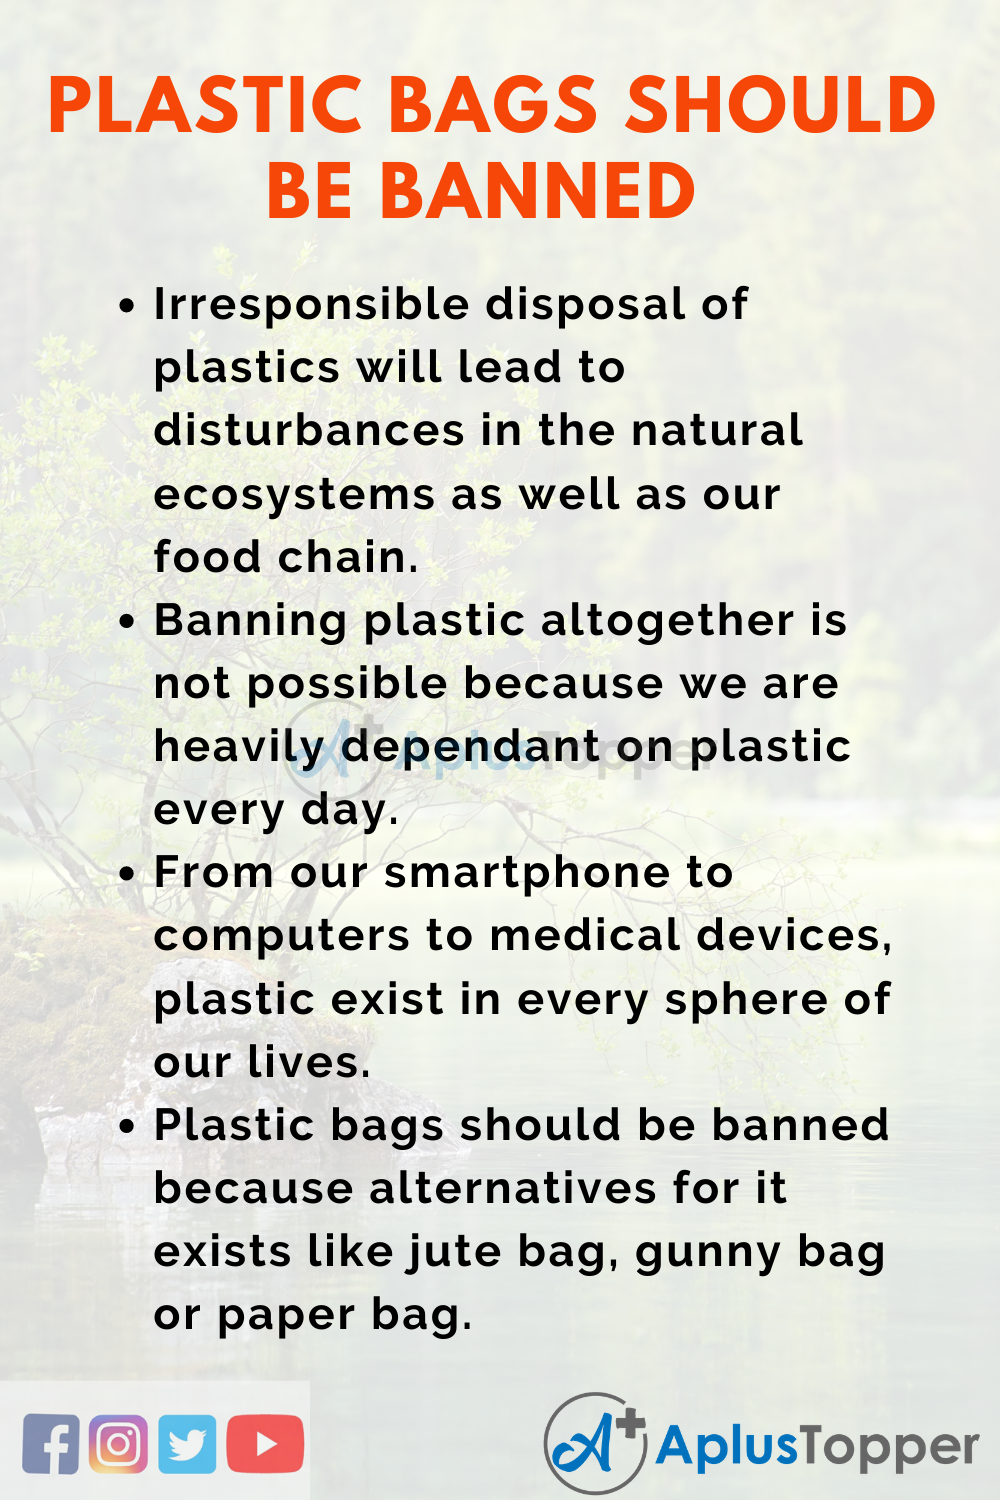 Essay on Plastic Bags Should be Banned